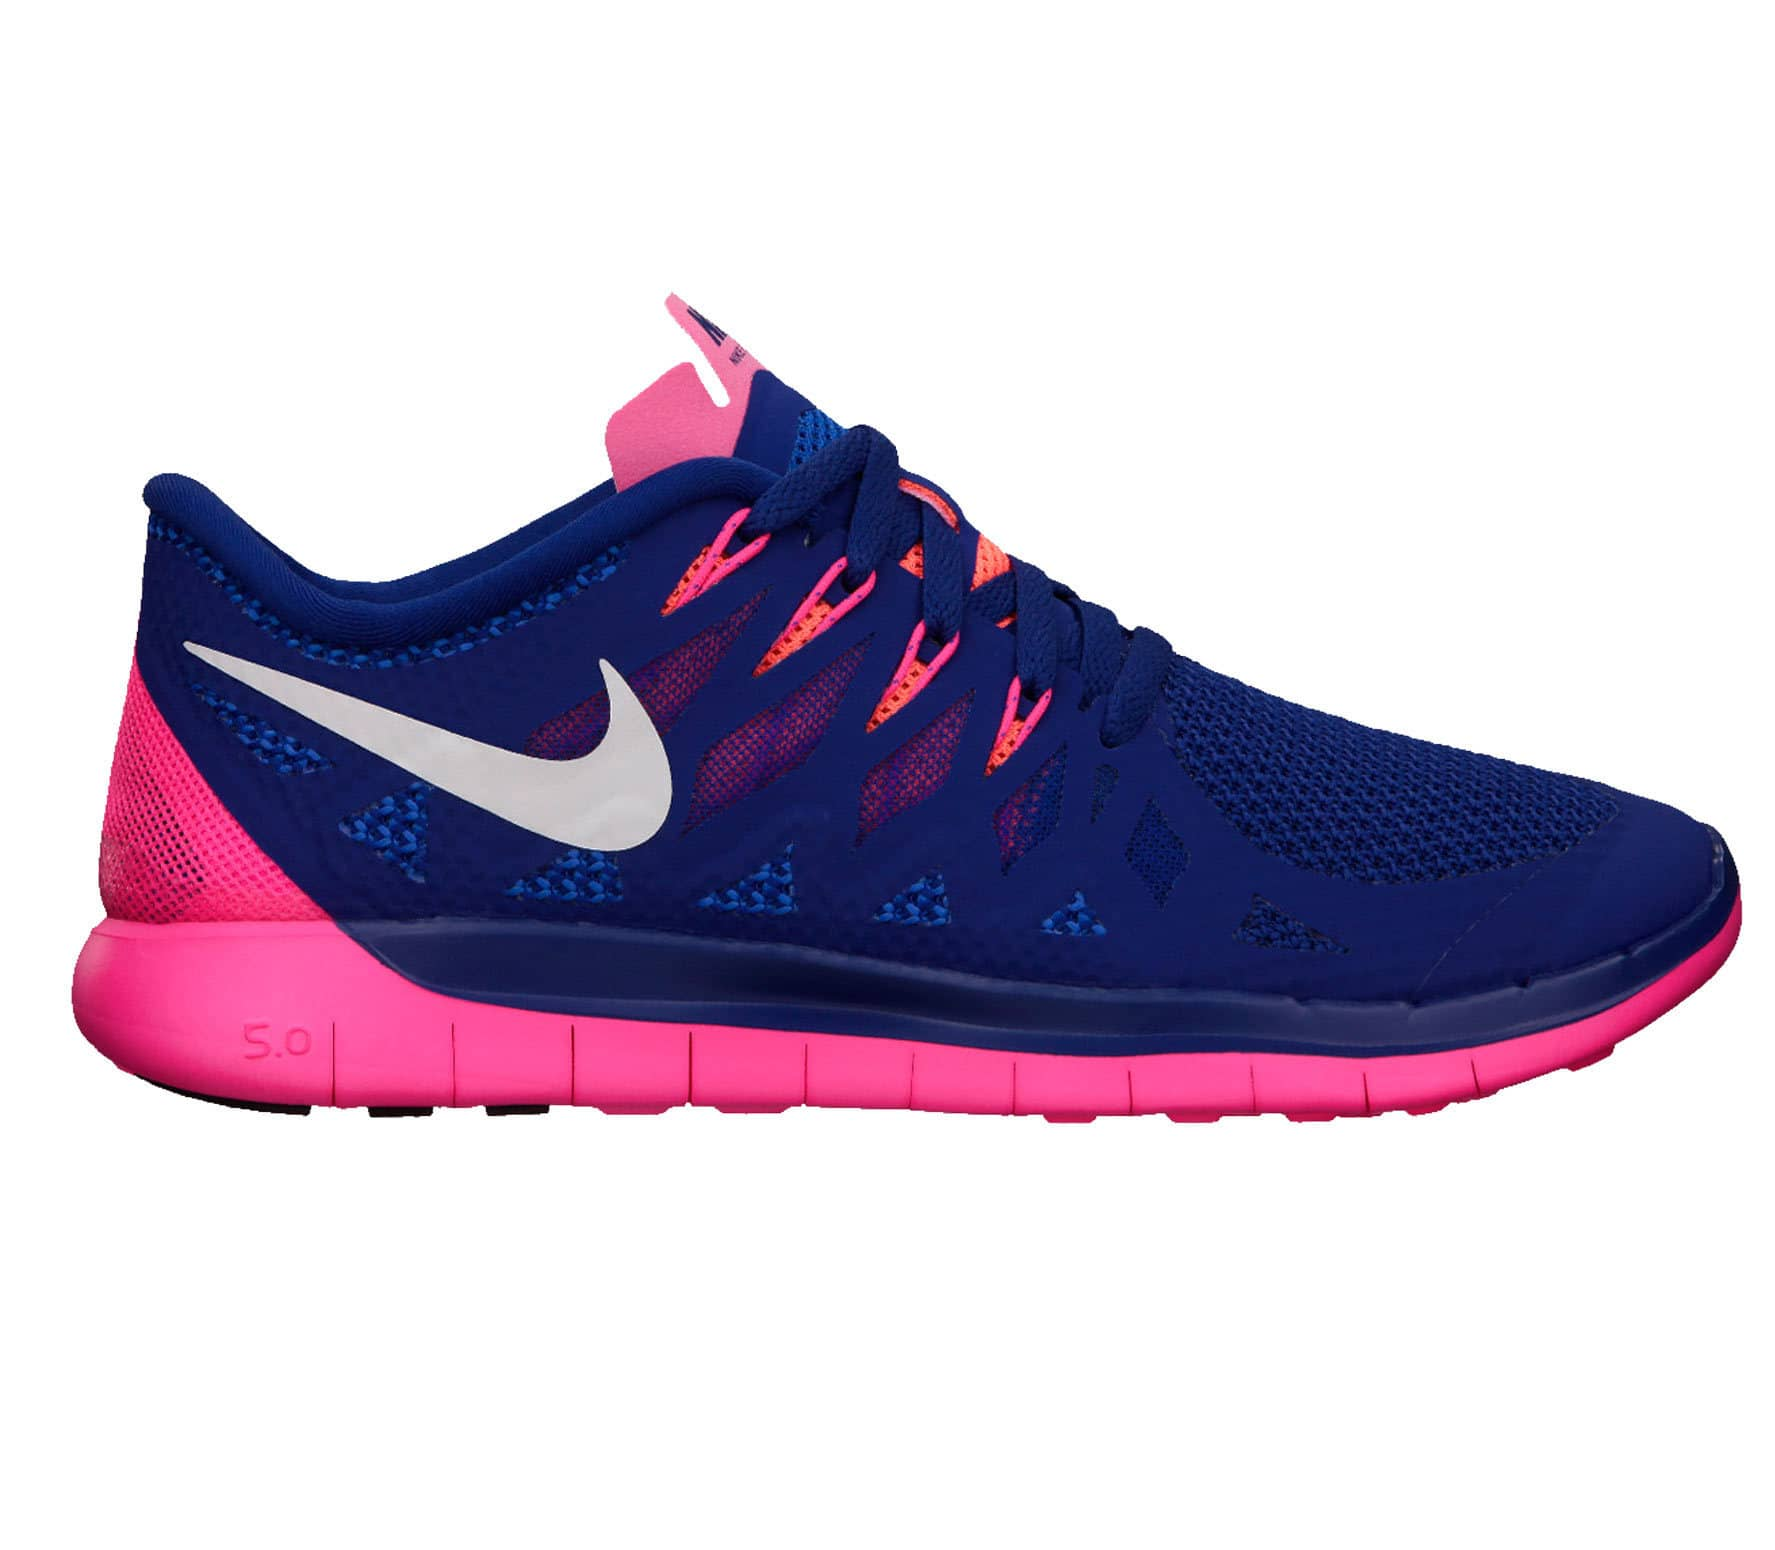 new arrival 664bd 46882 Nike - Free 5.0 women s running shoes (blue pink)